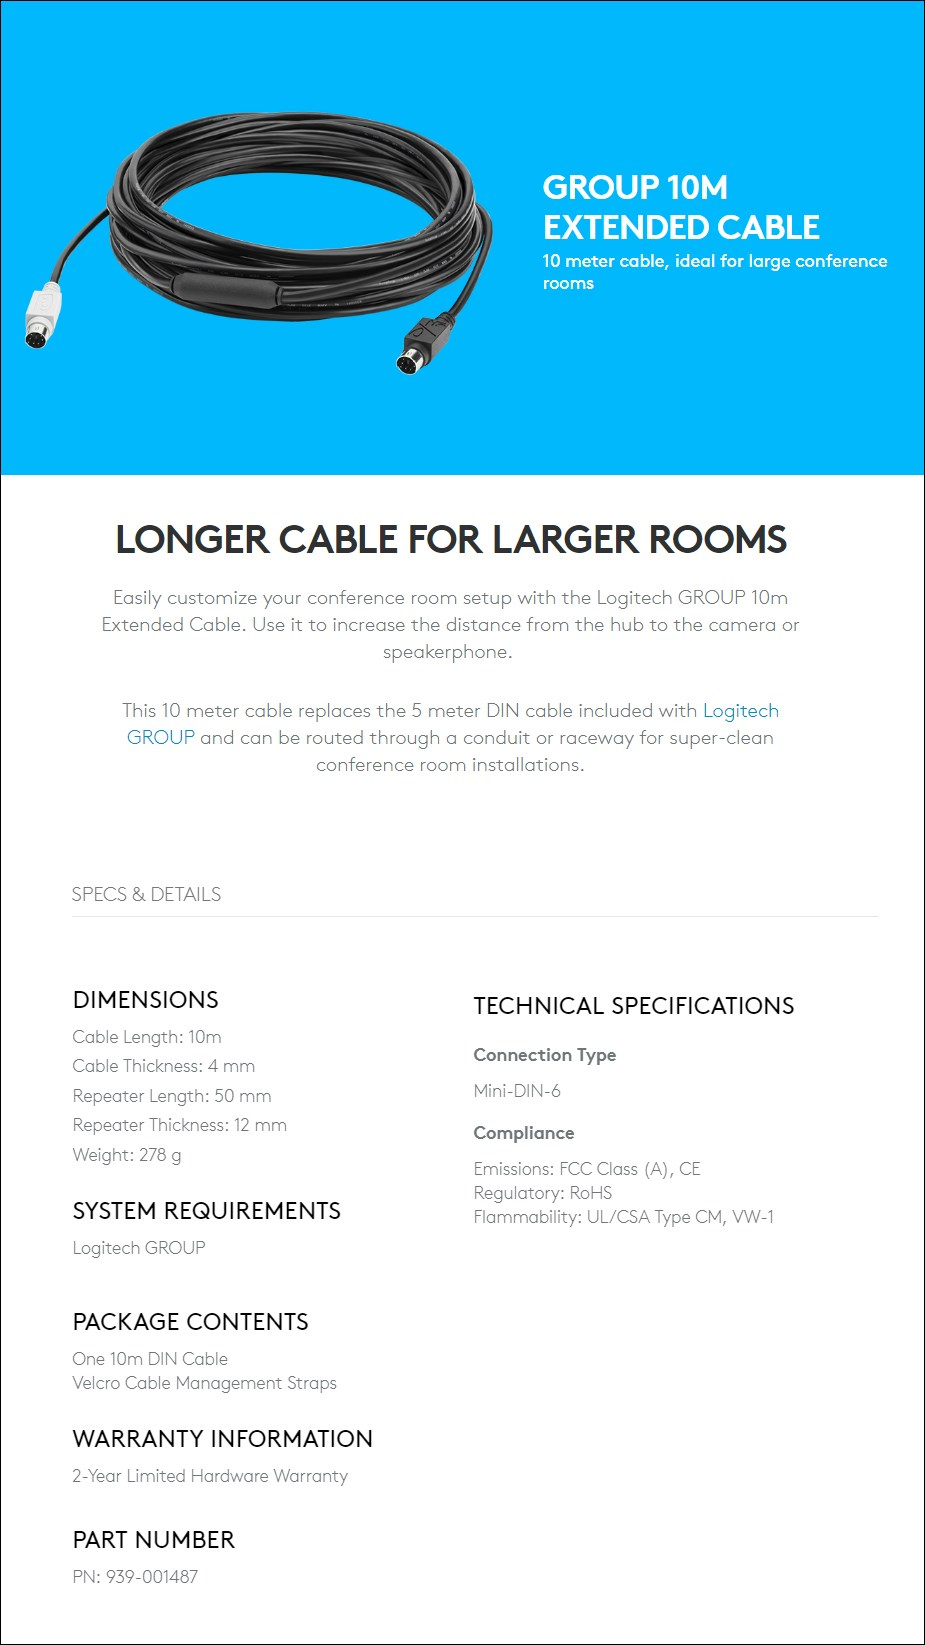 Logitech Group 10m Extended Cable for Large Conference Rooms - Desktop Overview 1